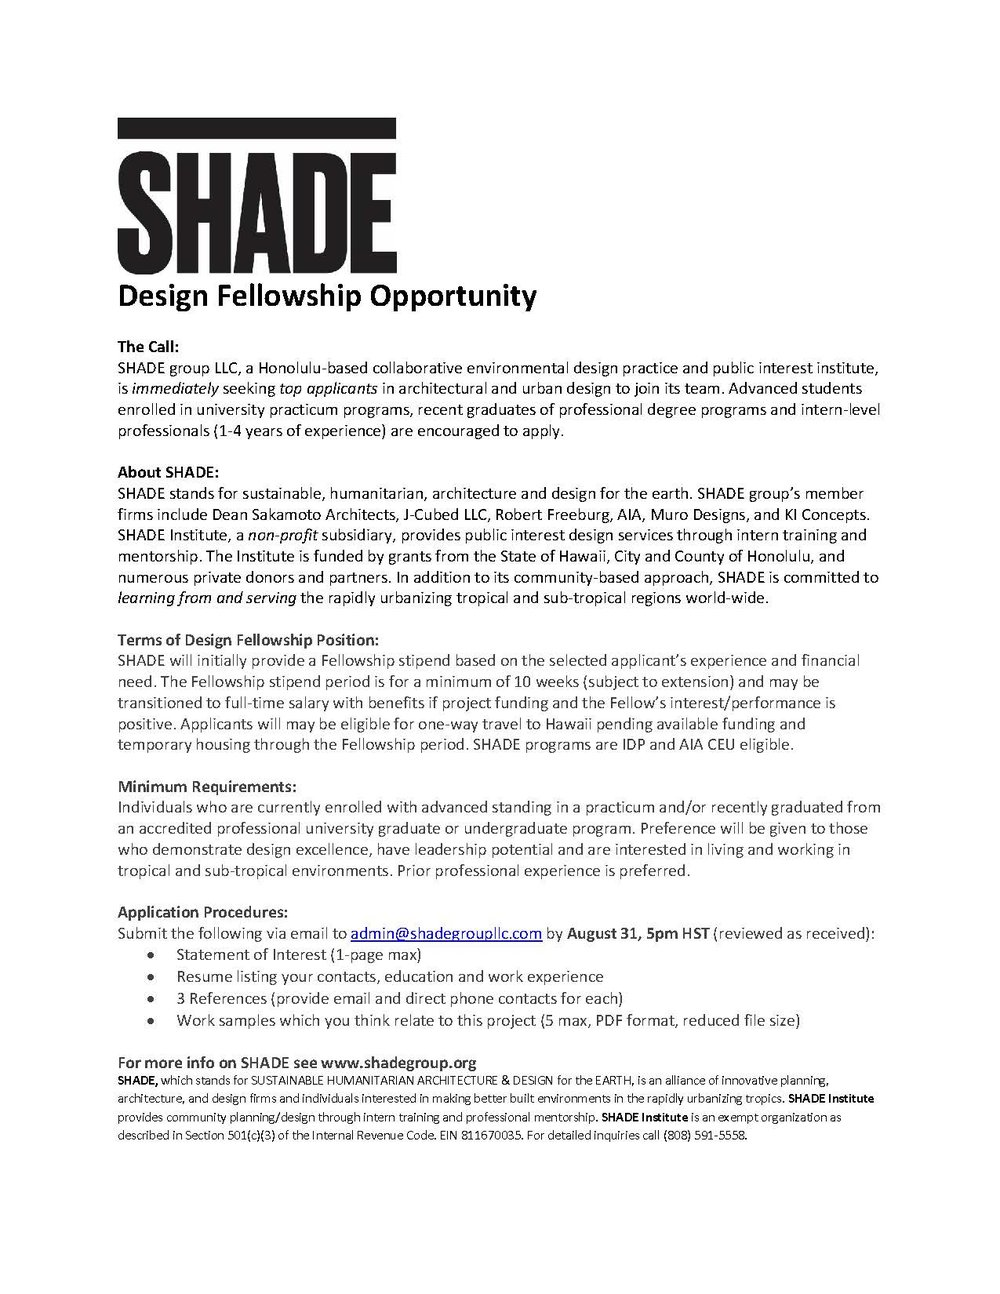 SHADE 2018 Fellowship Designer Opporturnity_180731.jpg